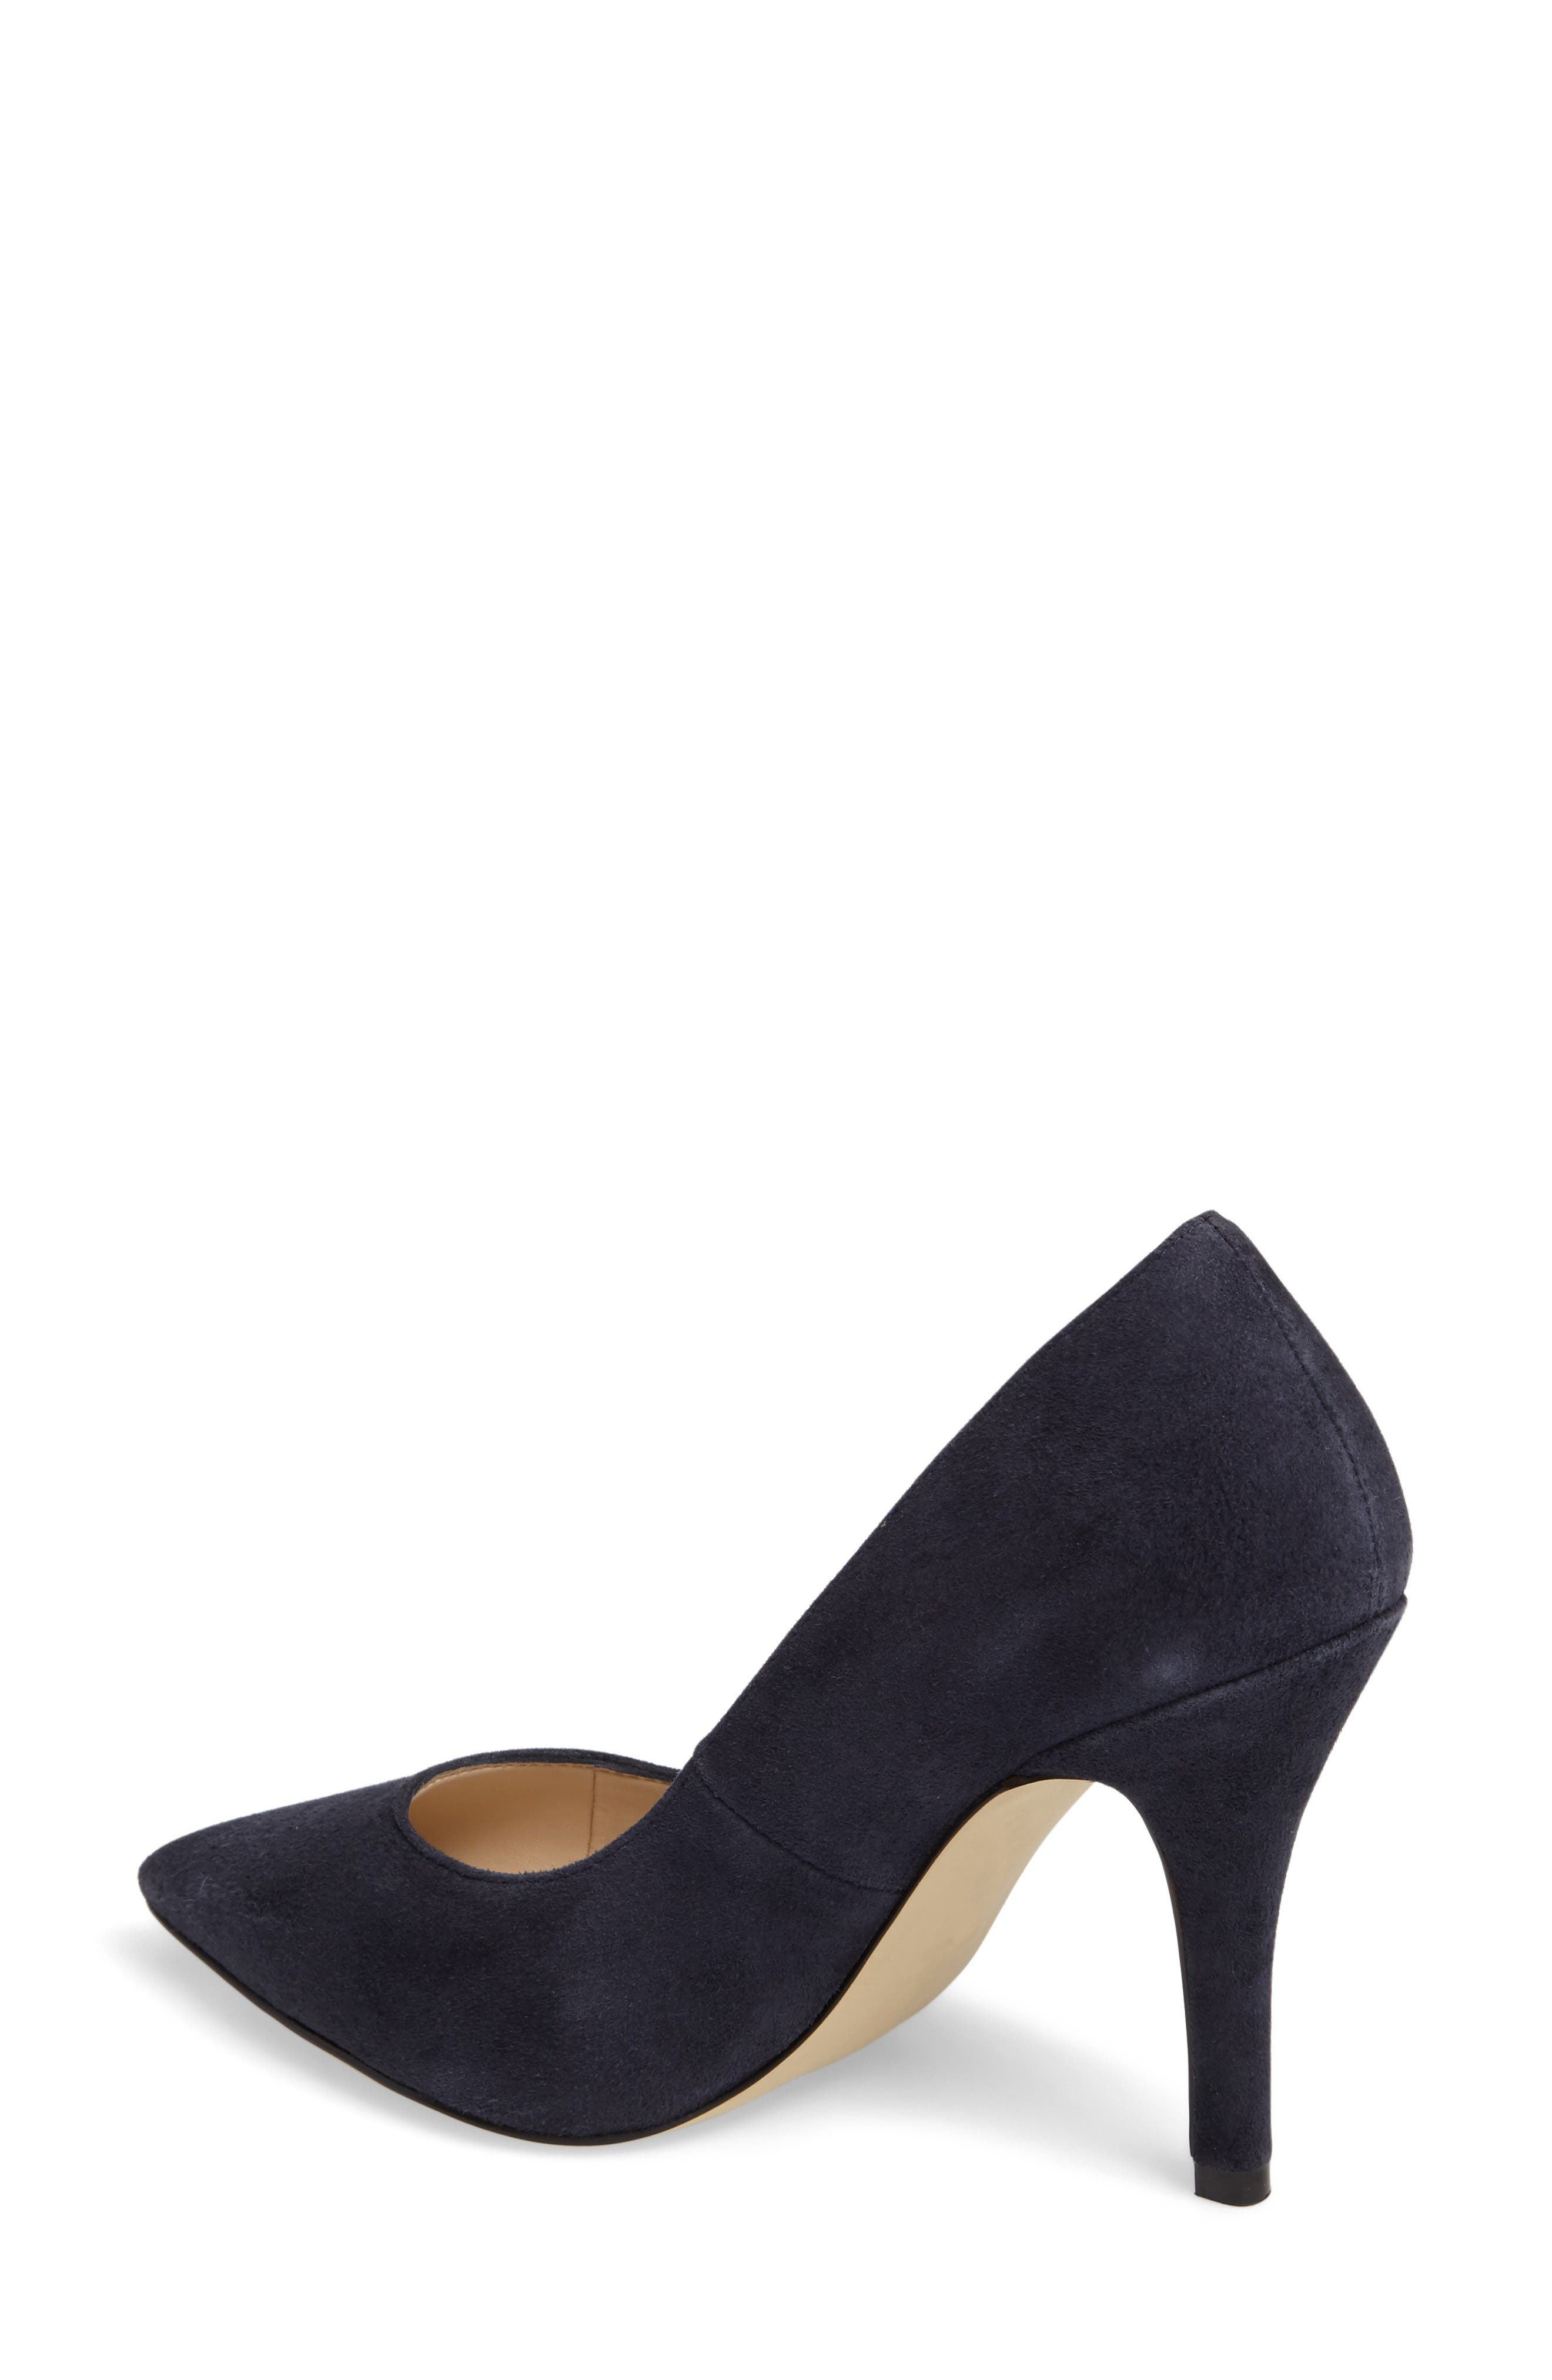 Vally Pointy Toe Pump,                             Alternate thumbnail 2, color,                             Midnight